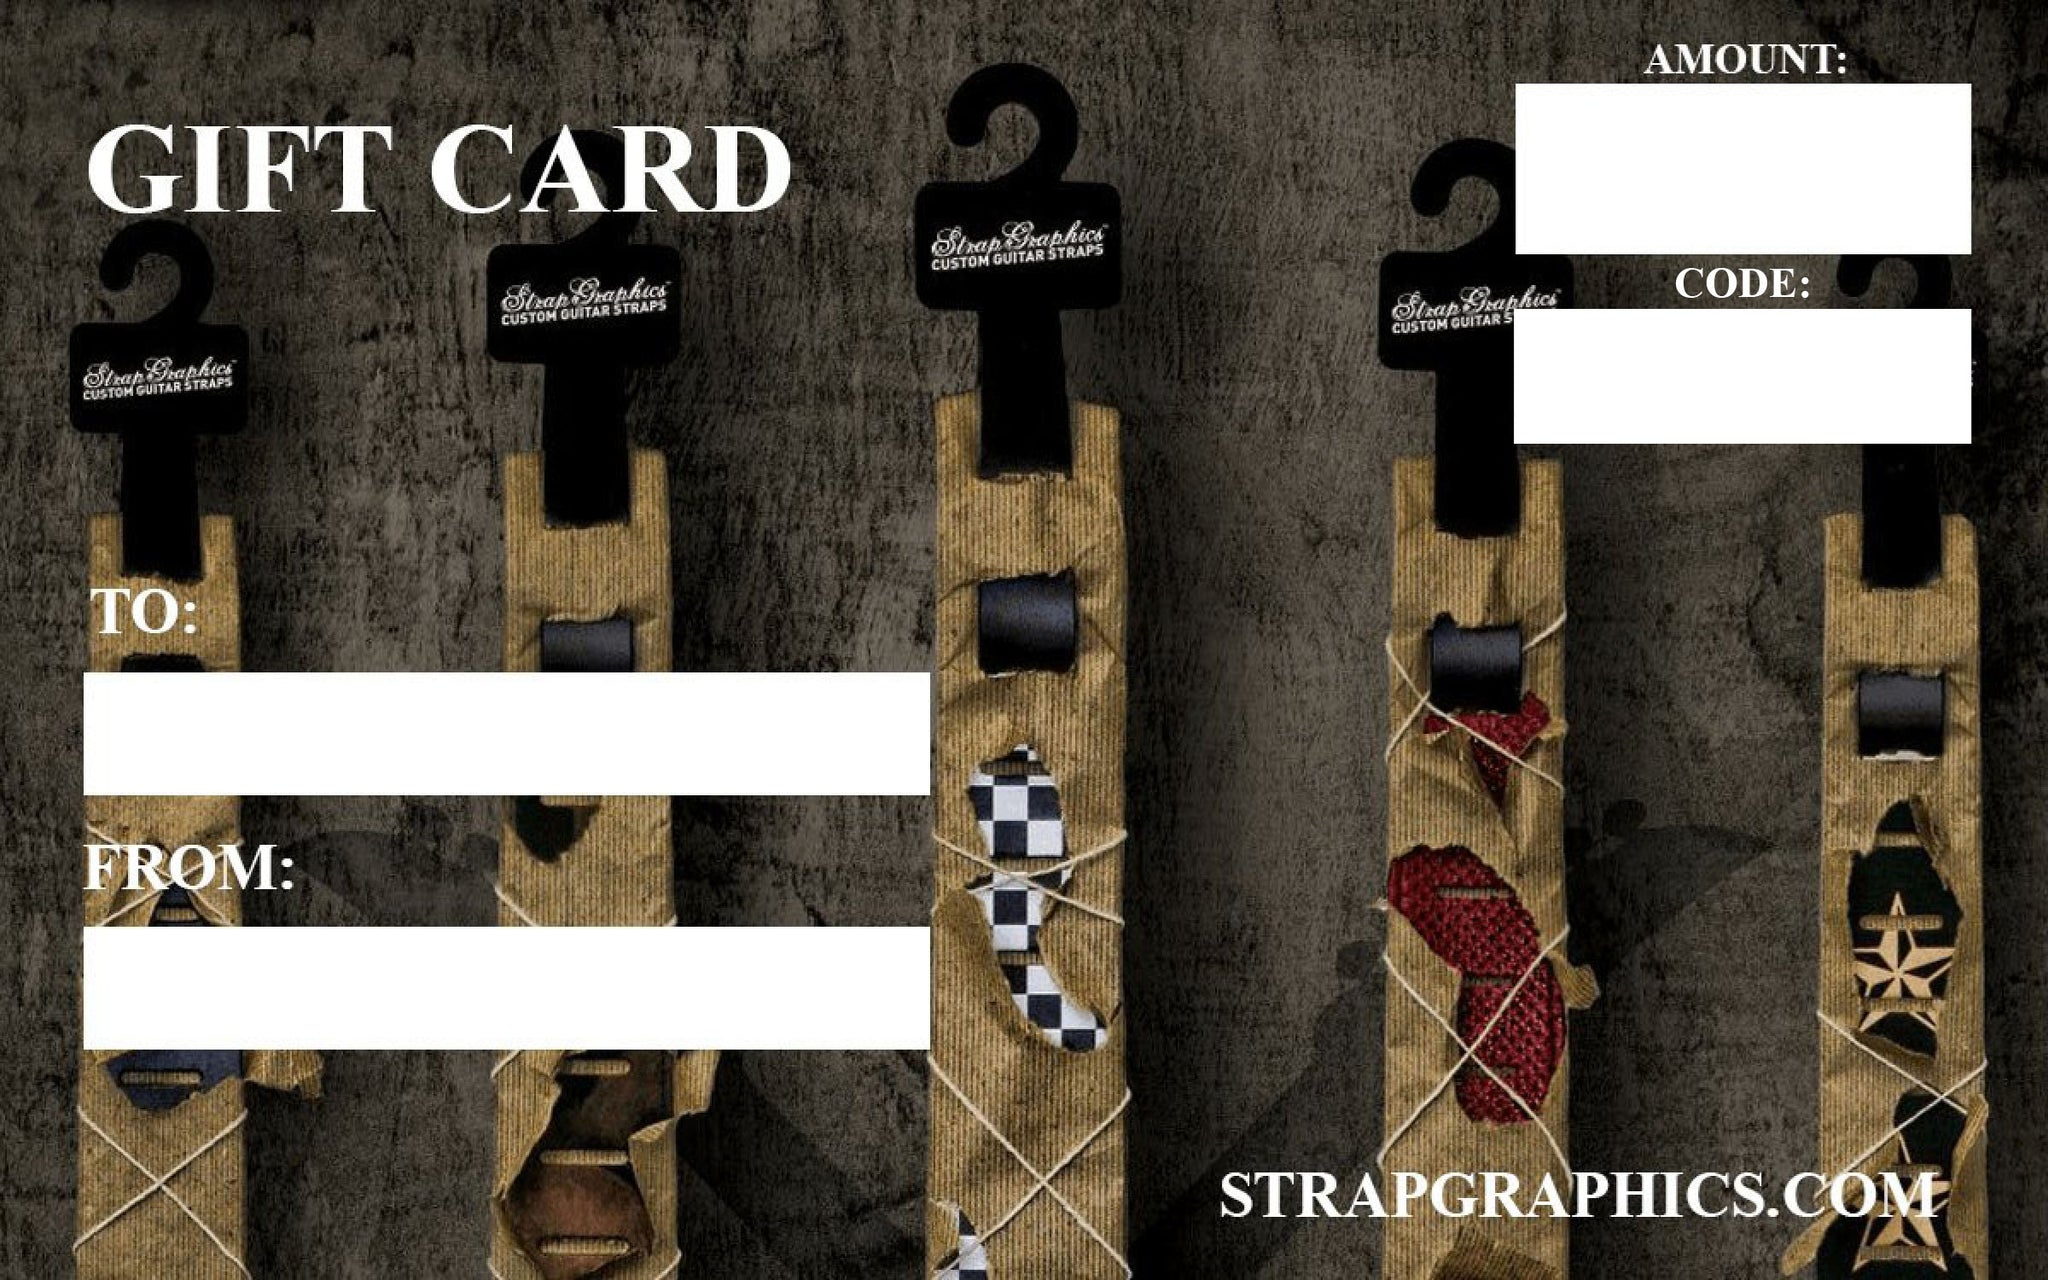 [Custom Guitar Straps] - StrapGraphics